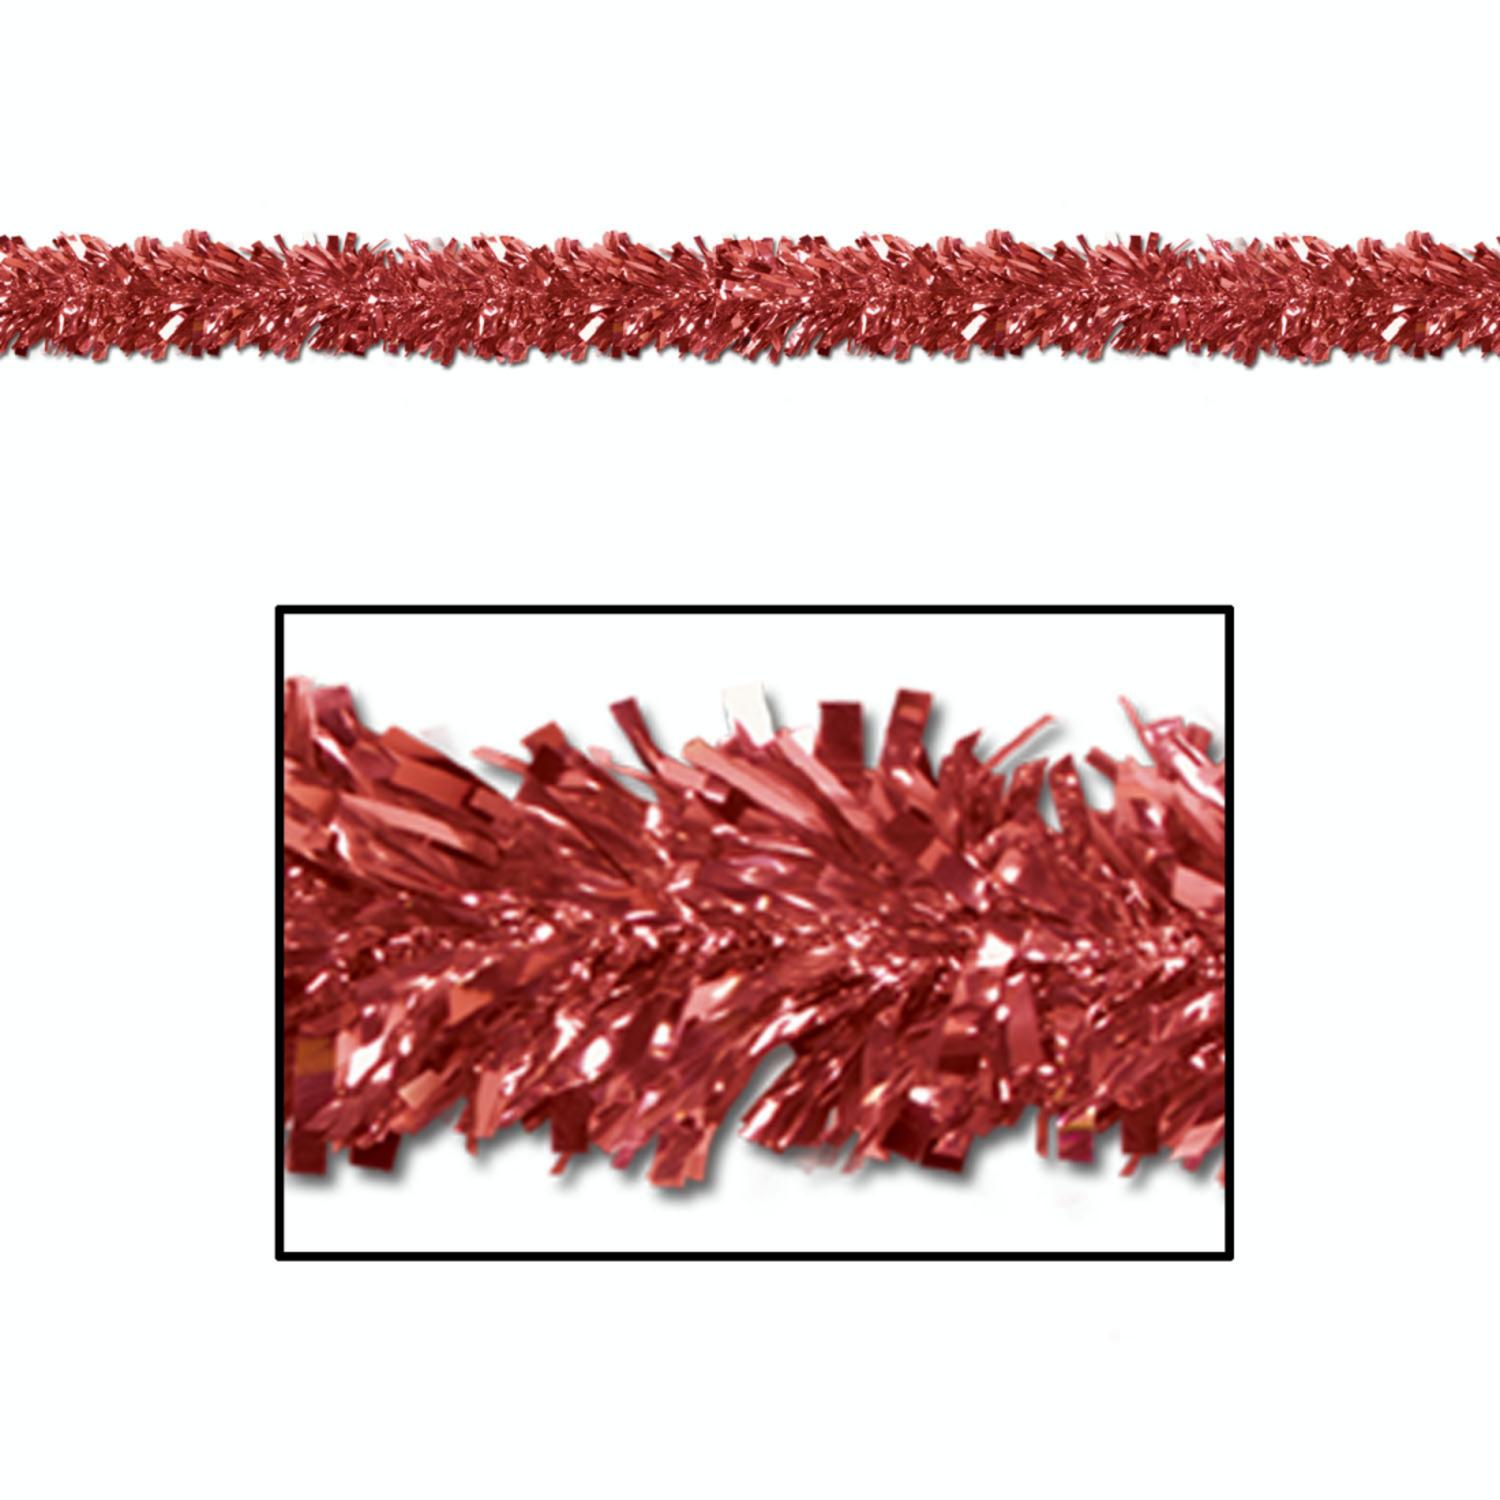 Club Pack of 12 Festive Metallic Red Foil Tinsel 6-Ply Christmas Garlands 15' - Unlit